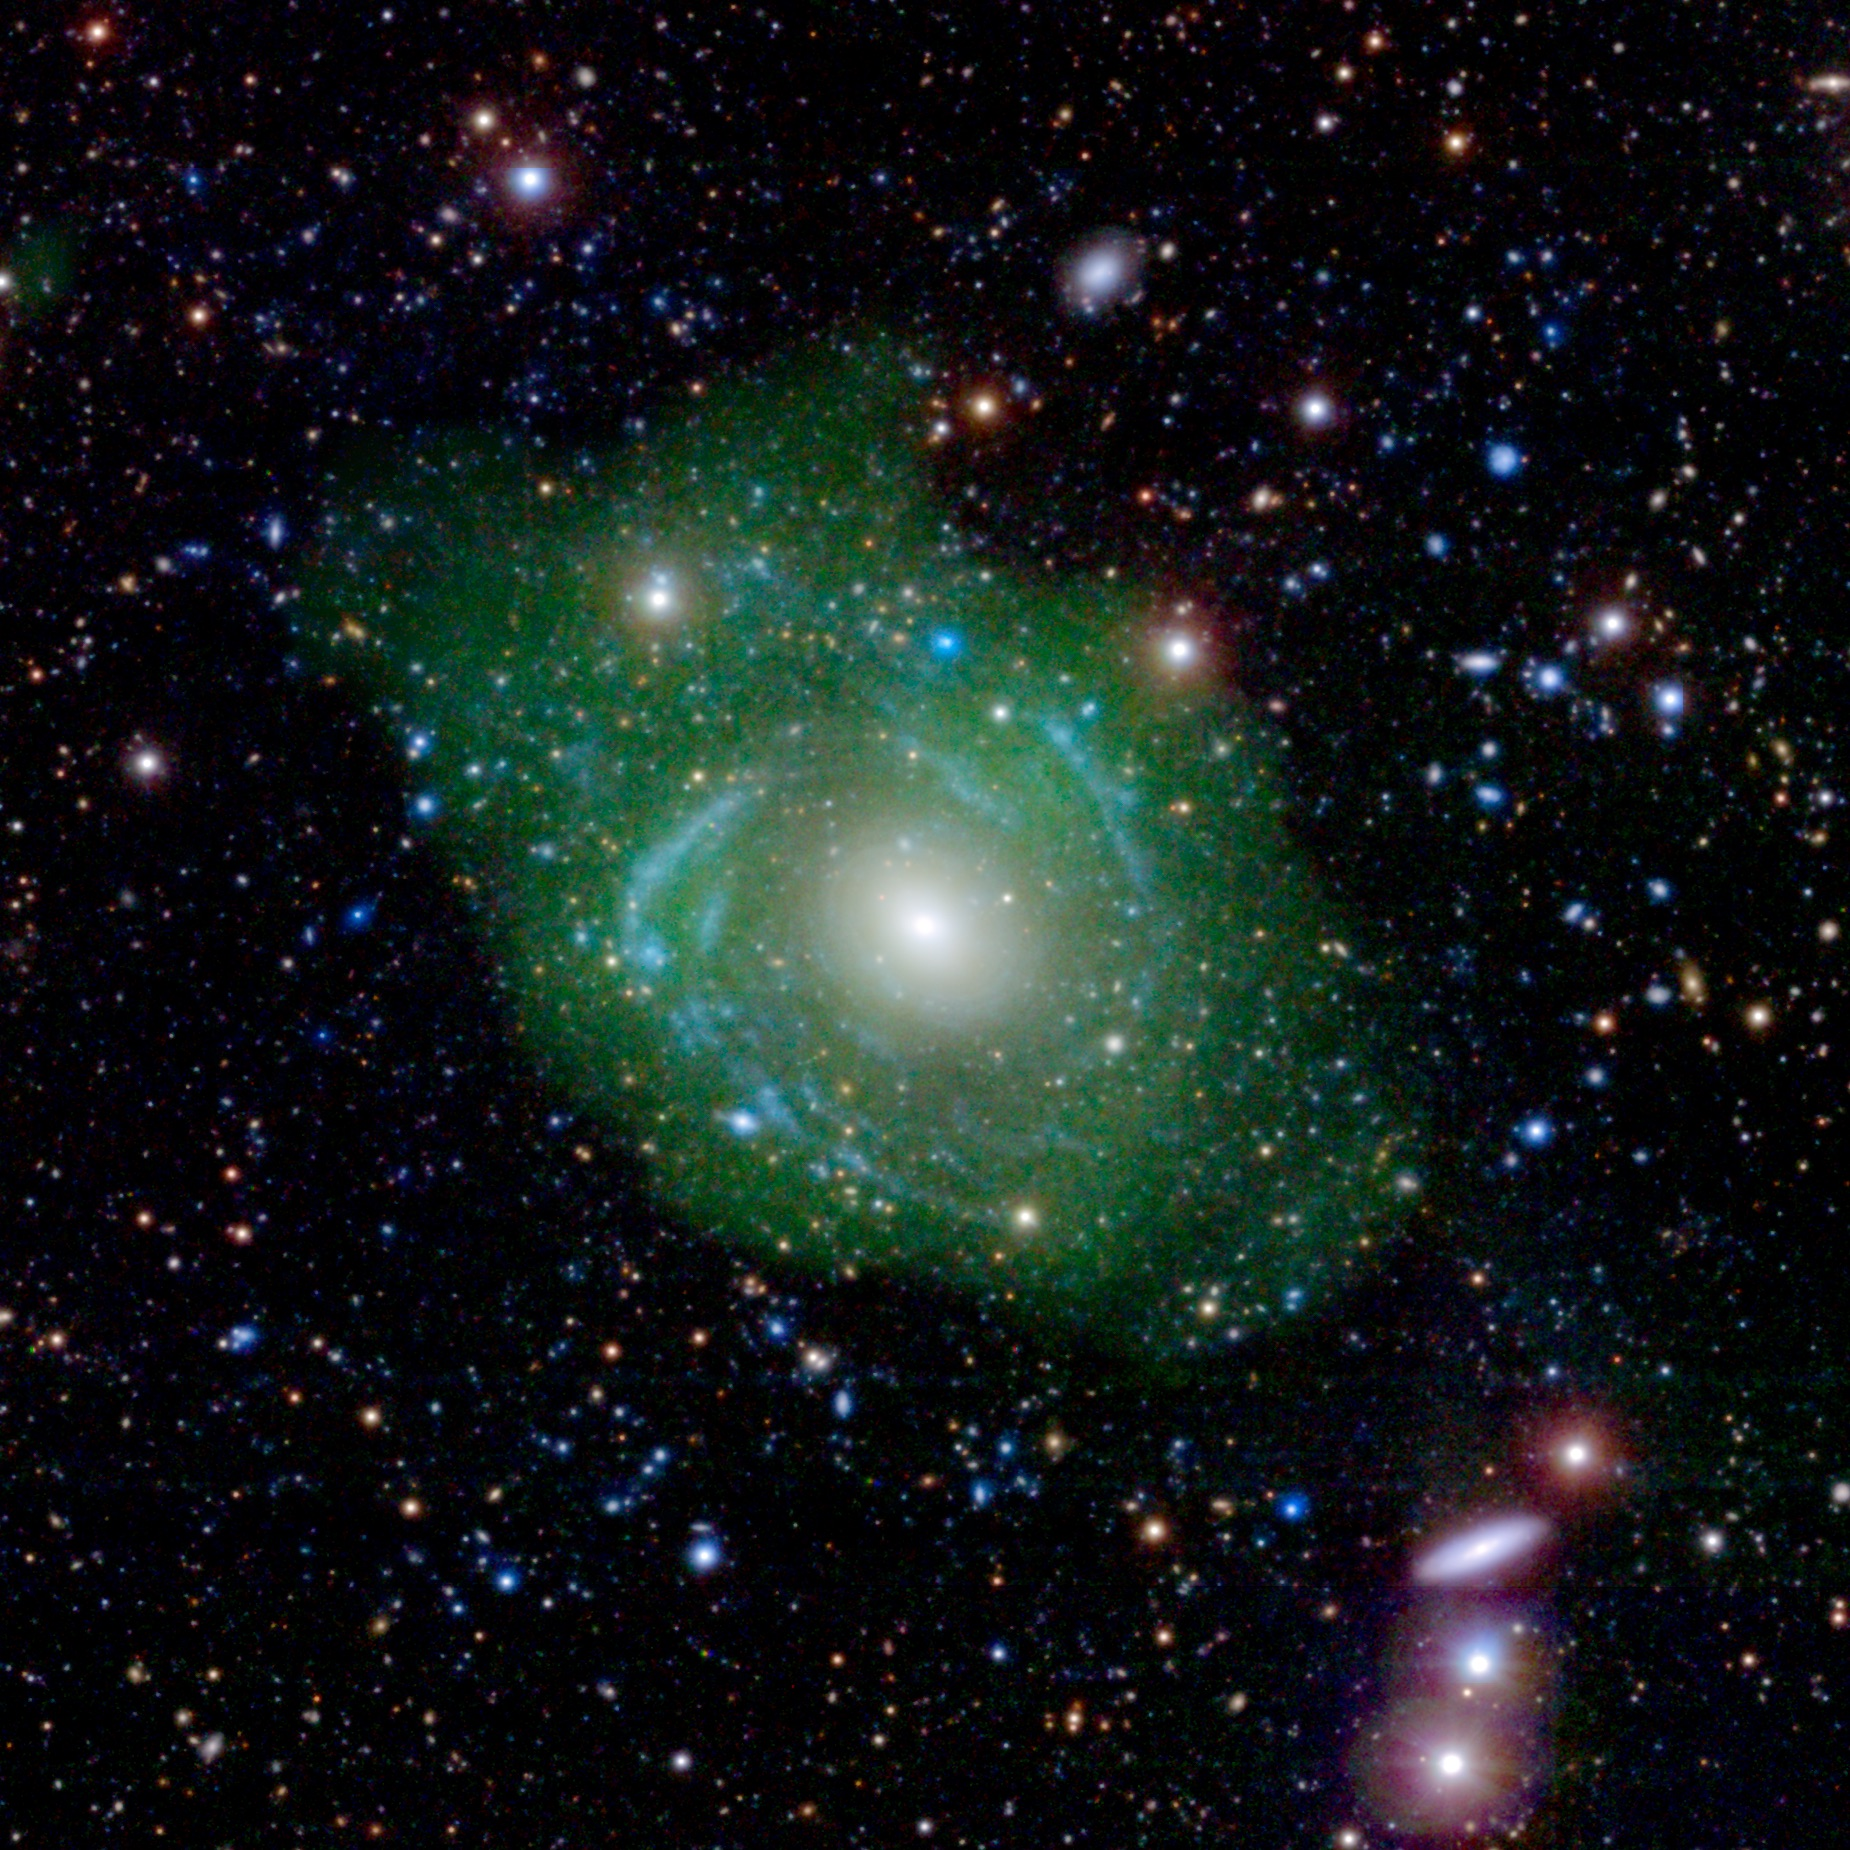 UGC 1382 appeared to be a simple elliptical galaxy, based on optical data from the Sloan Digital Sky Survey (SDSS). But spiral arms emerged when astronomers incorporated ultraviolet data from the Galaxy Evolution Explorer (GALEX). Combining that with a view of low-density hydrogen gas (shown in green), detected at radio wavelengths by the Very Large Array, scientists discovered that UGC 1382 is a giant. Image credit:NASA/JPL/Caltech/SDSS/NRAO